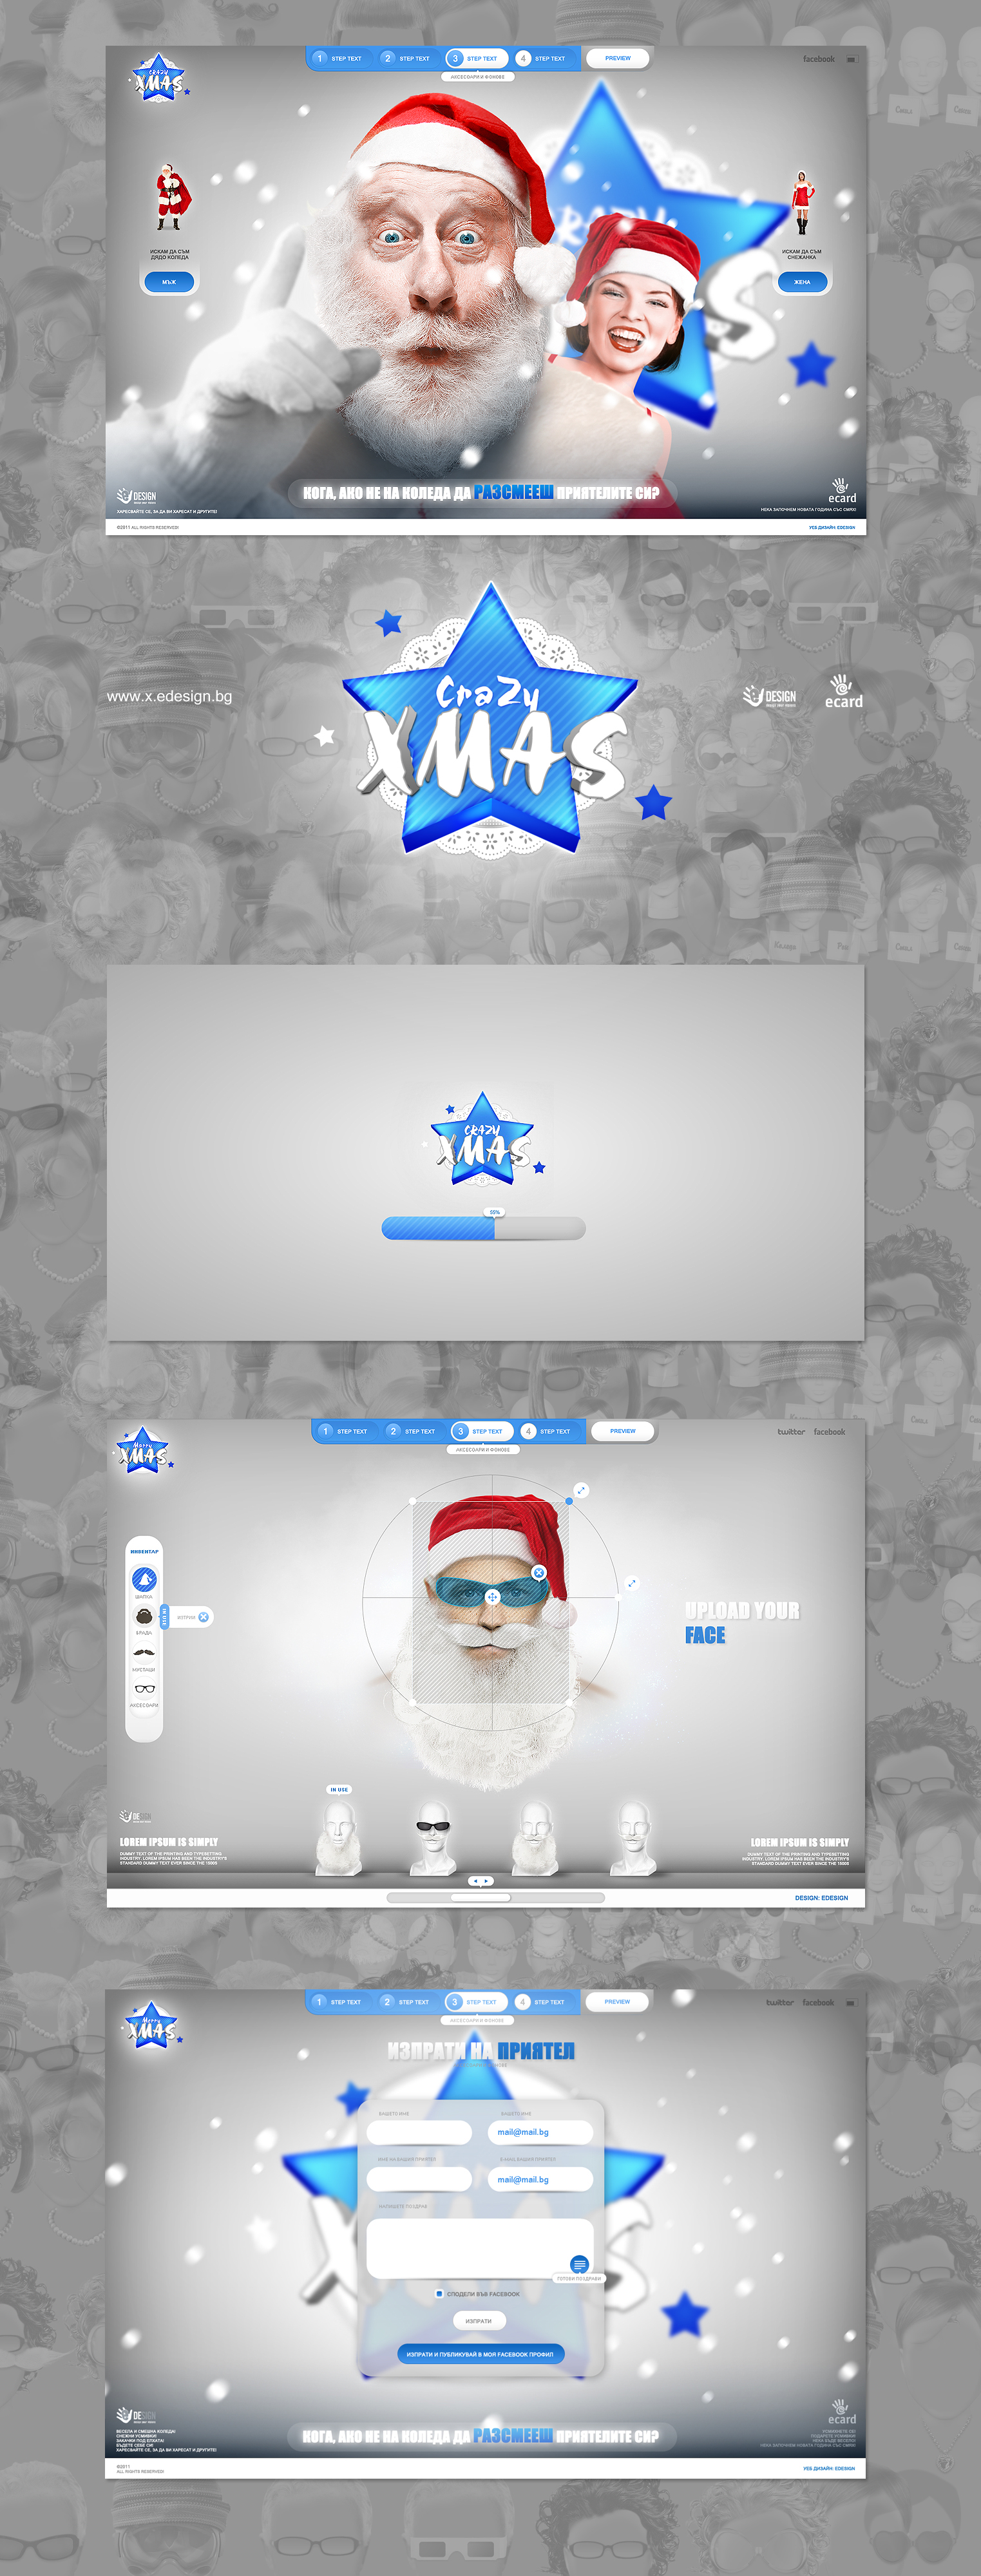 Crazy x mas by acrime123 on deviantart for Edesign login